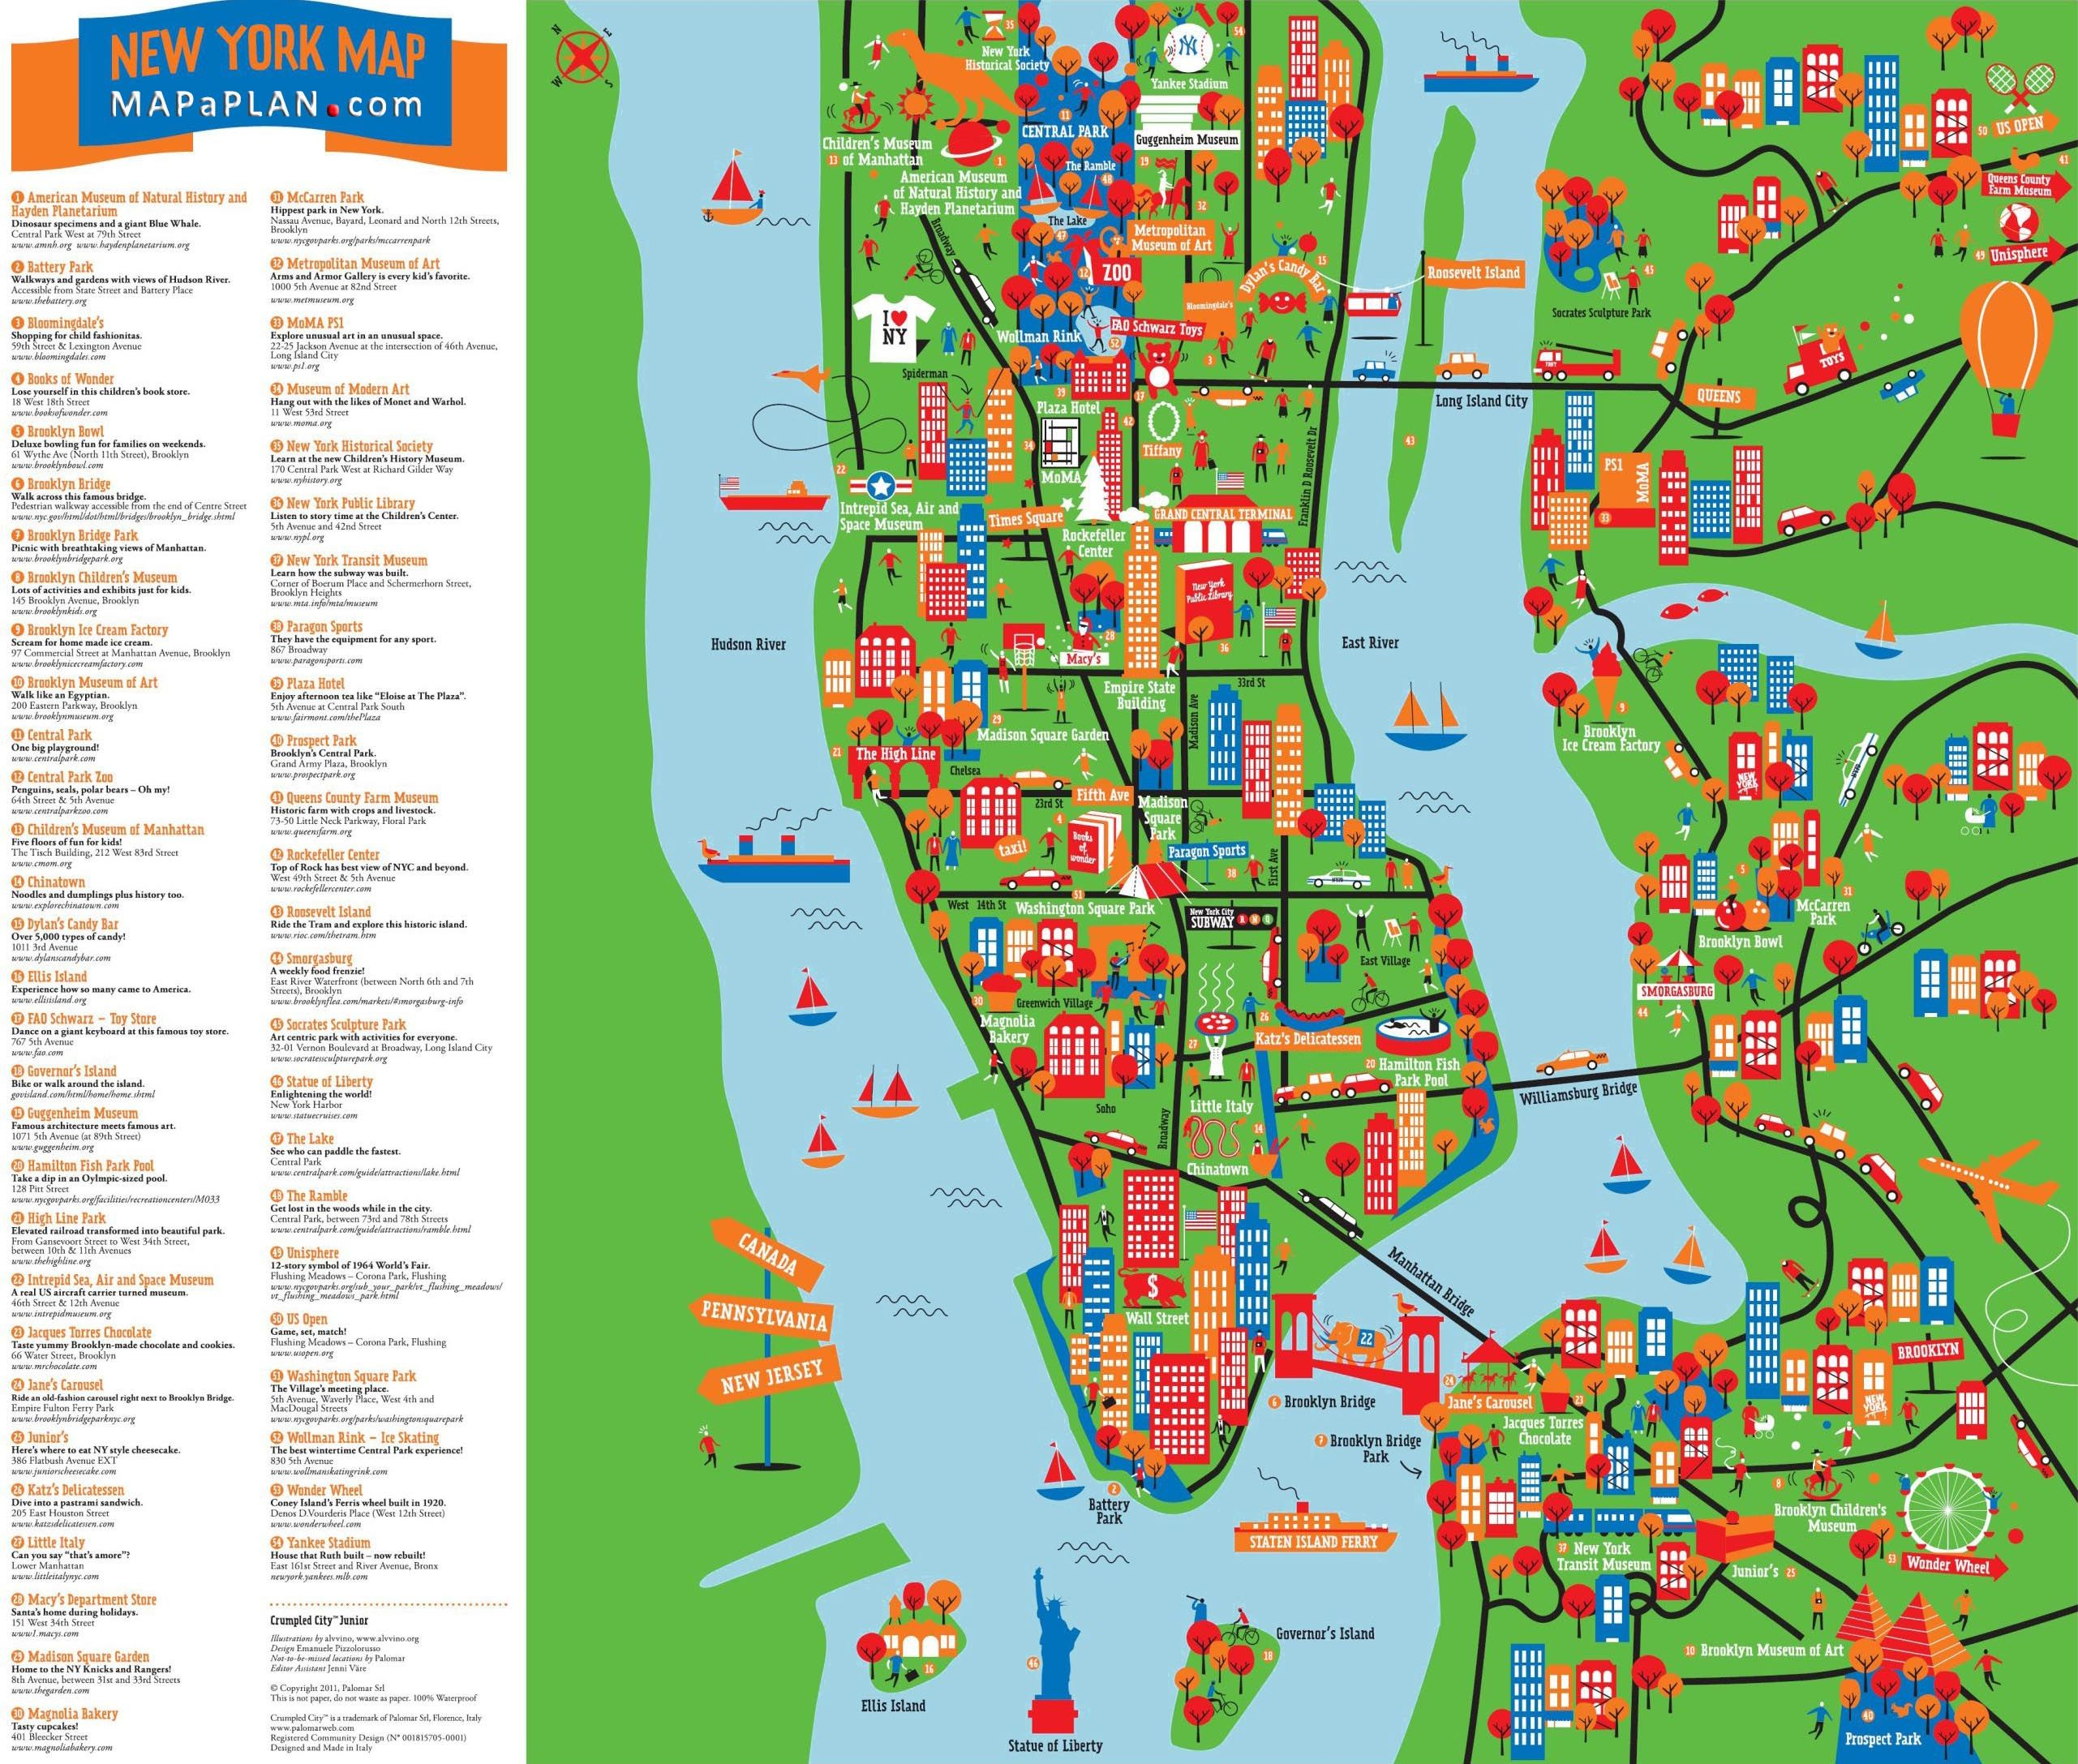 greatthingstodowithkidschildreninteractivecolorfulnew – Tourist Attractions Map In Argentina